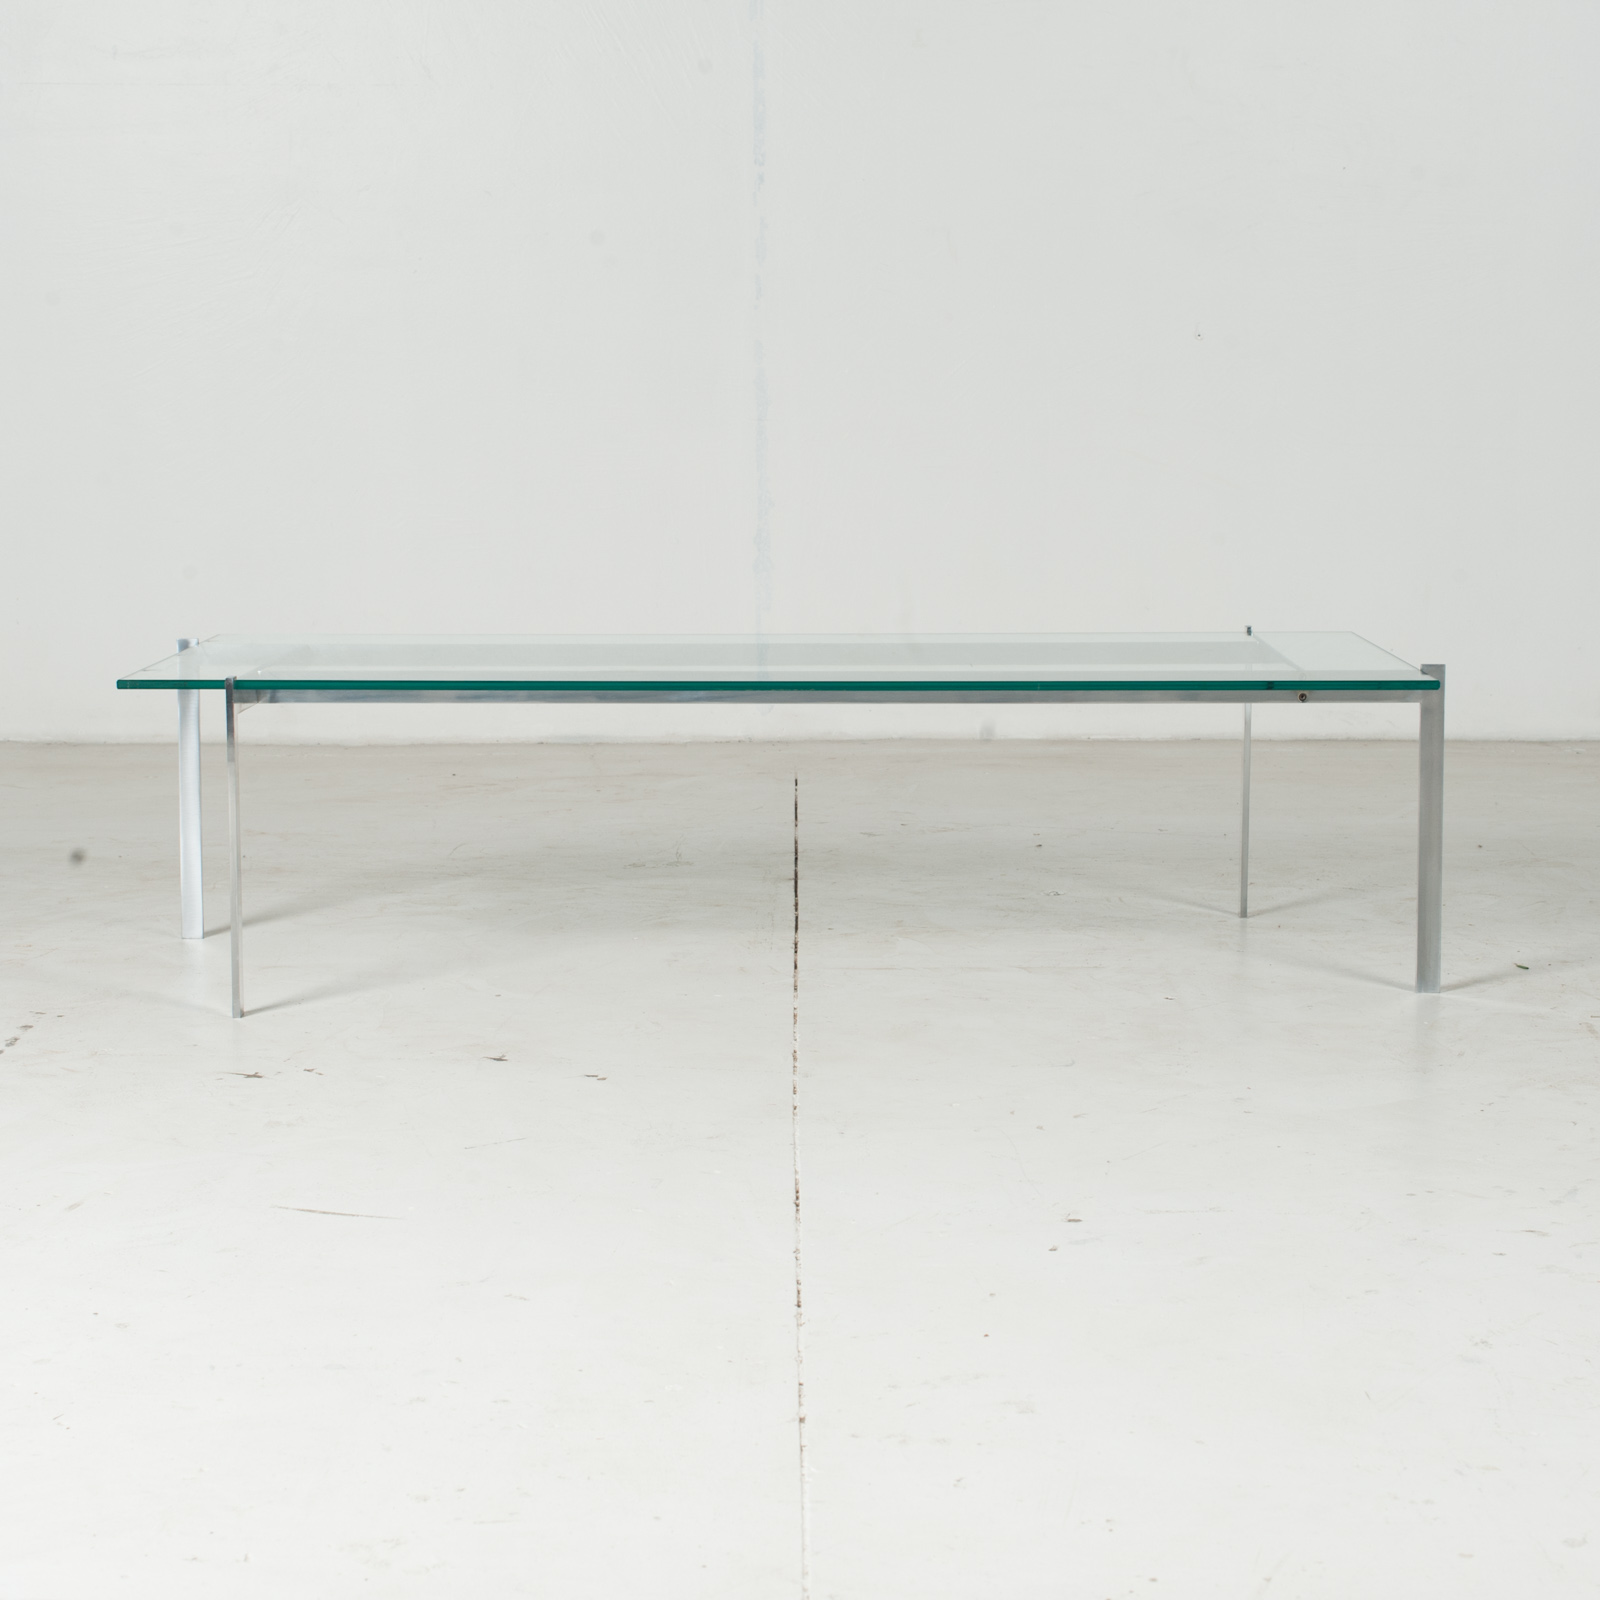 Coffee Table In The Style Of Poul Kjaerholm With Chrome And Glass, 1960s, Netherlands1